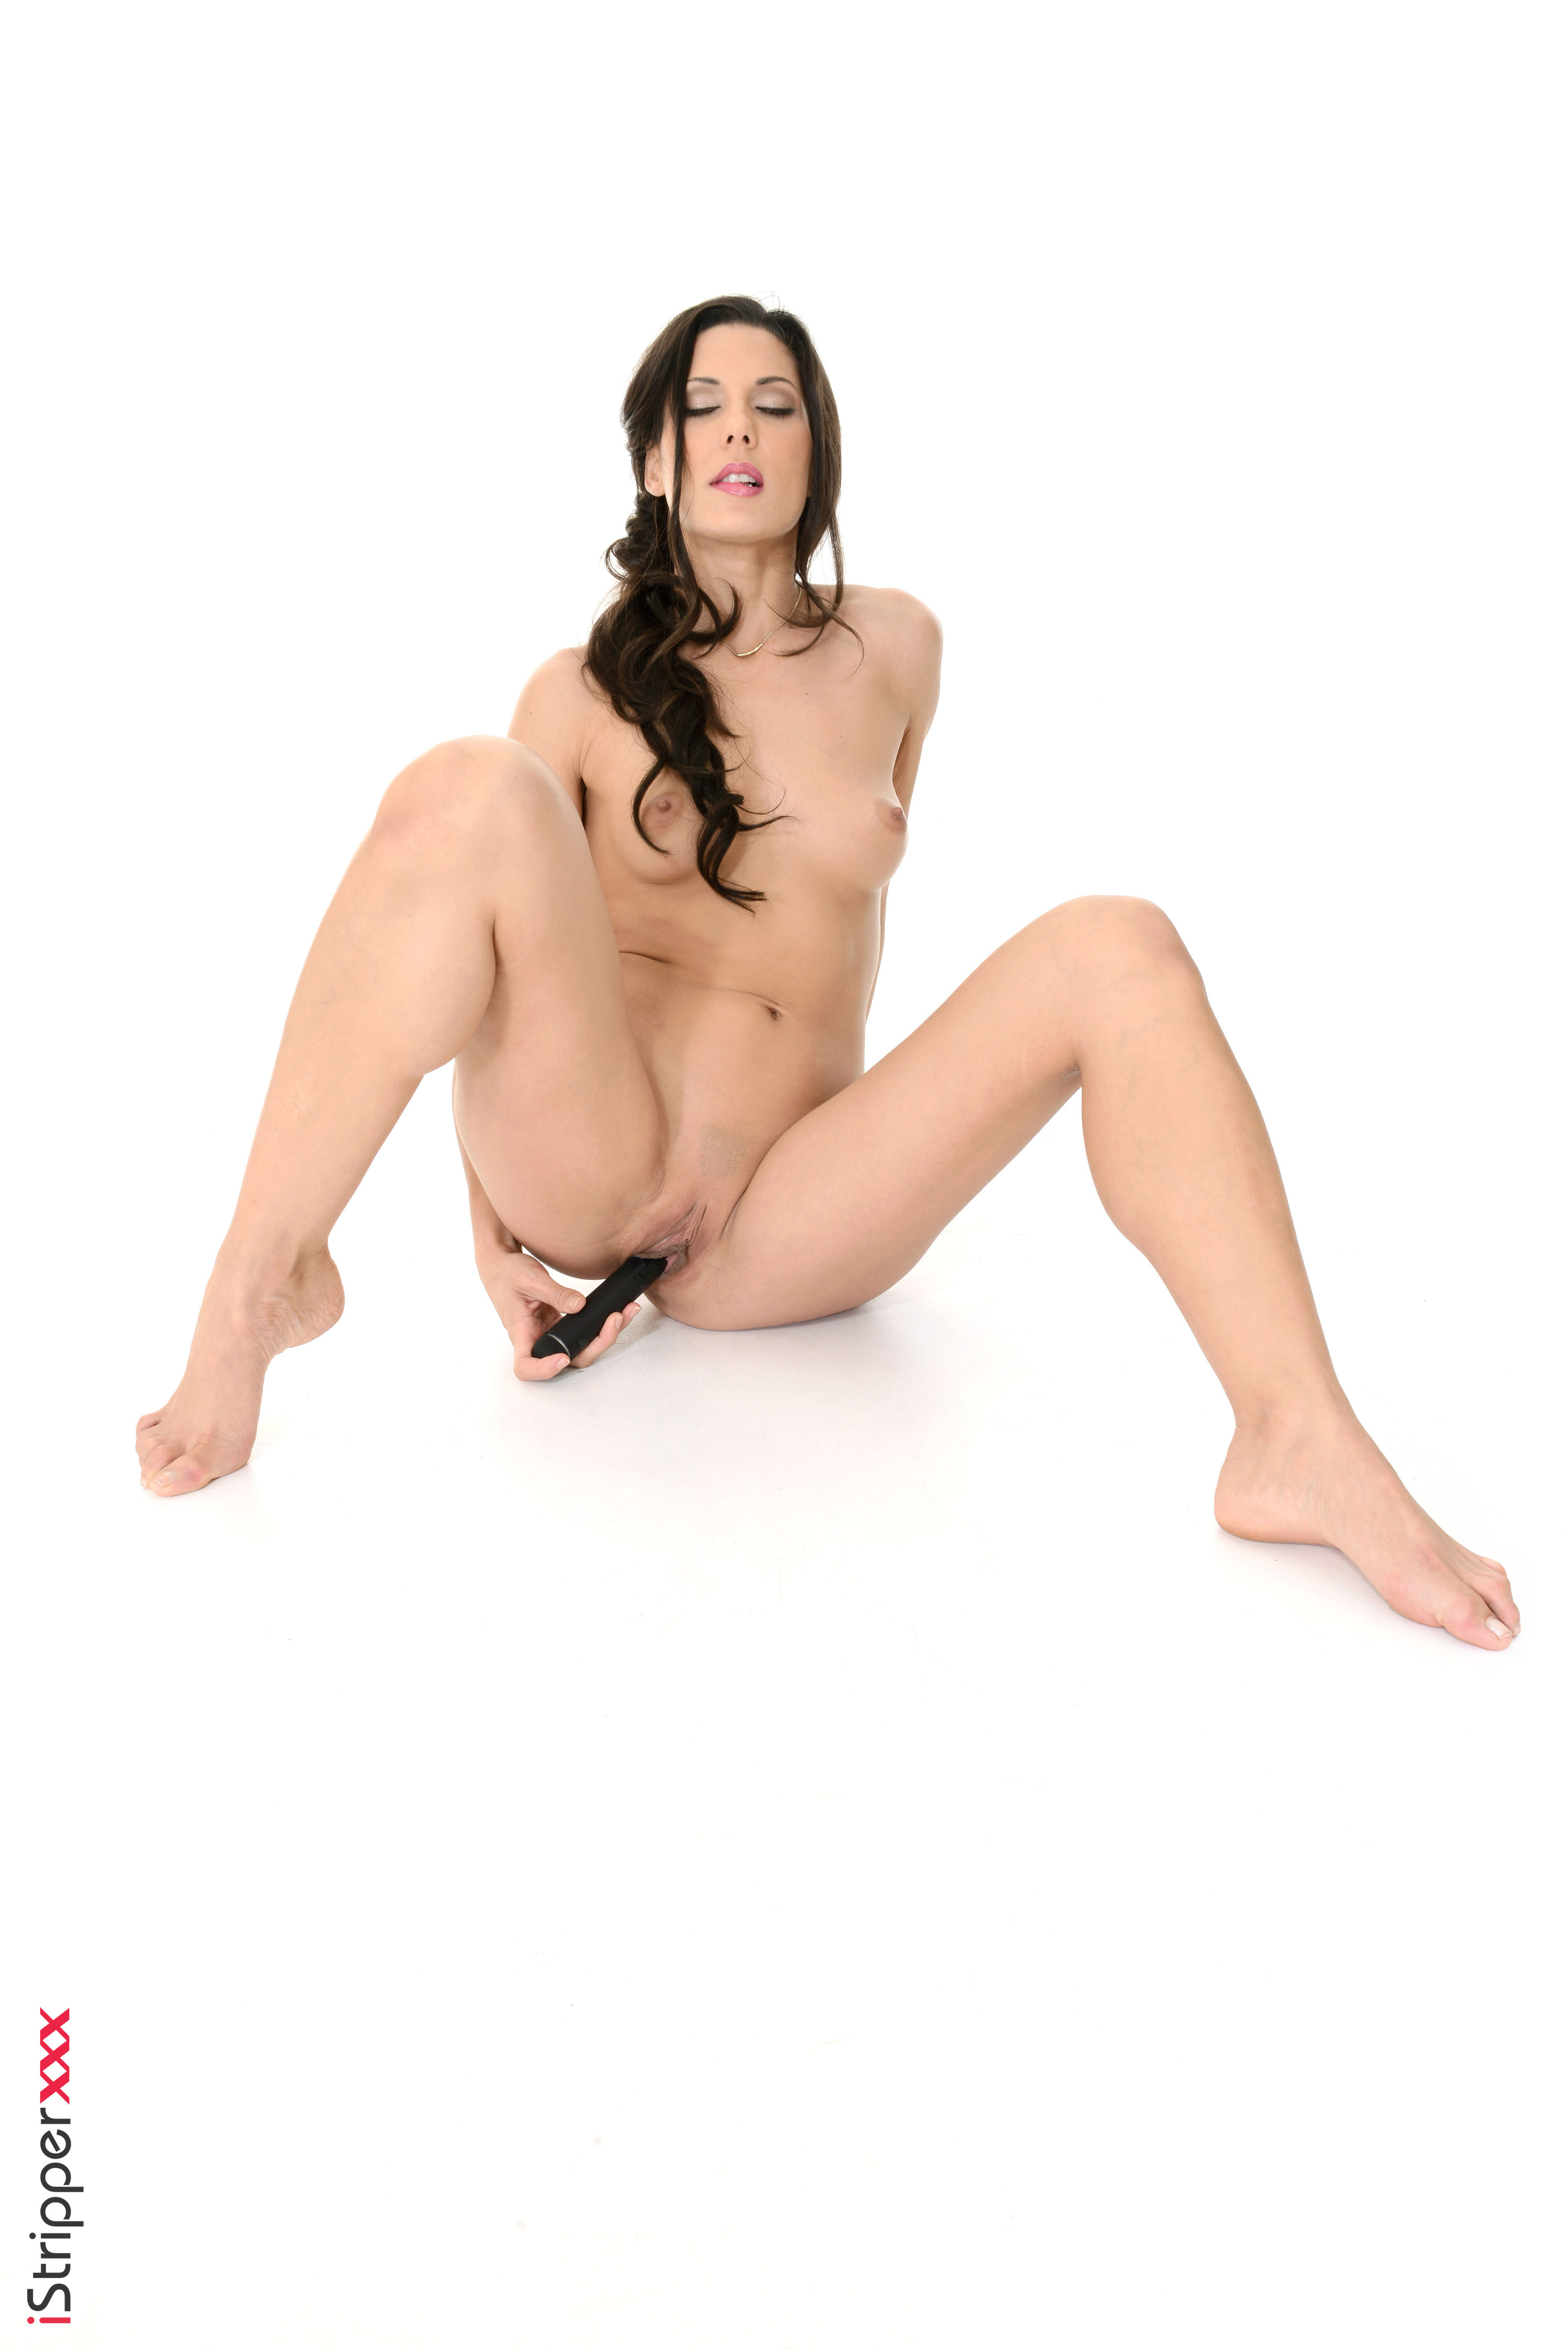 hd porn wallpapers free download